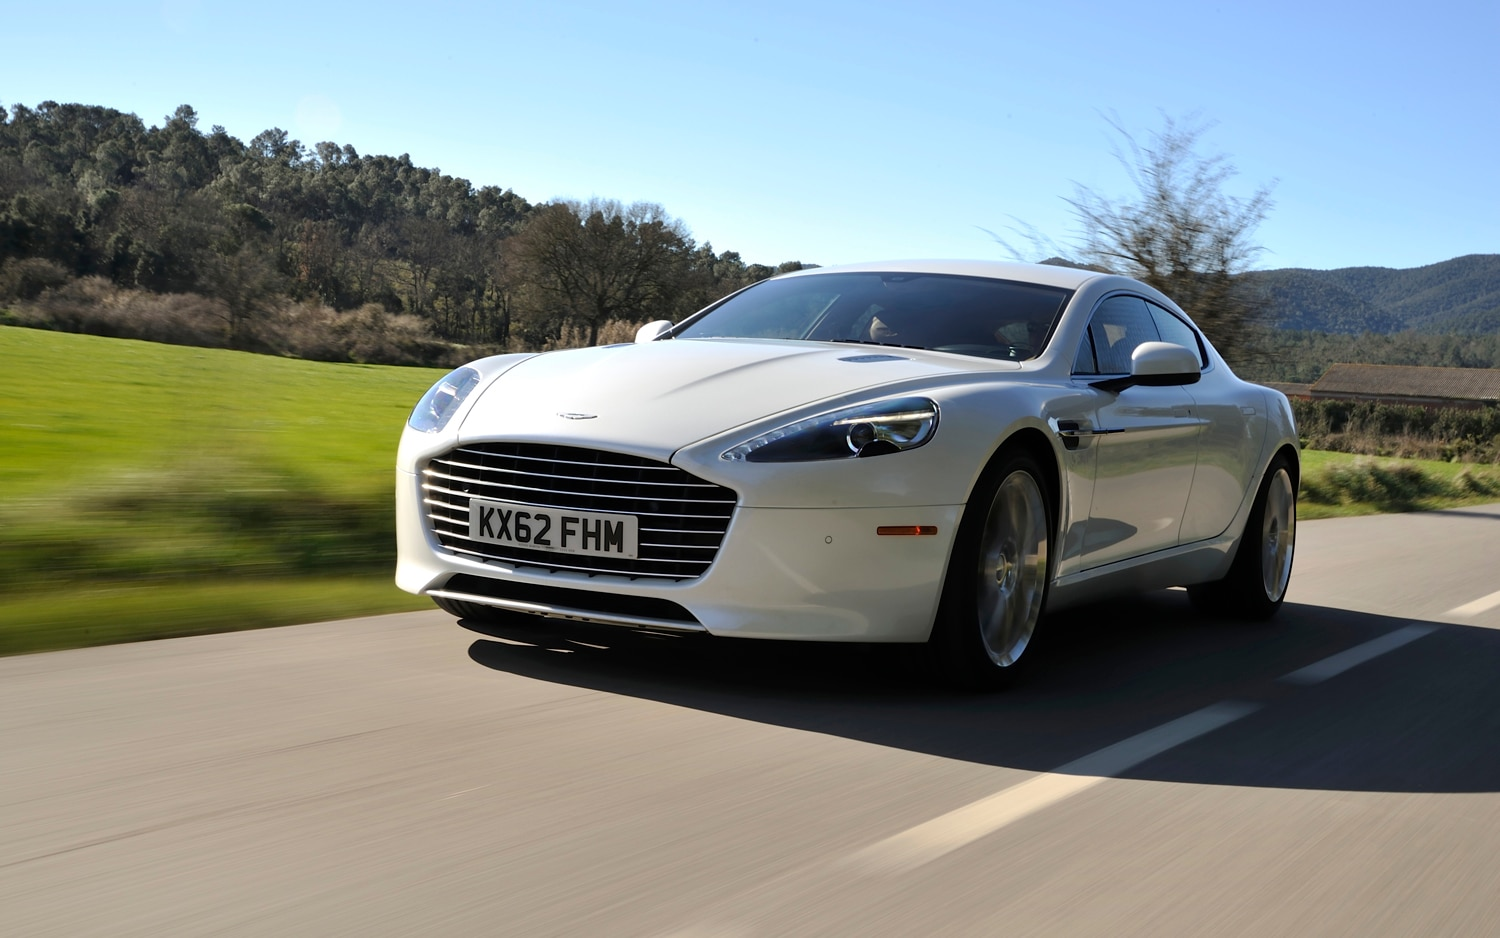 2014 Aston Martin Rapide S Front Left View 21